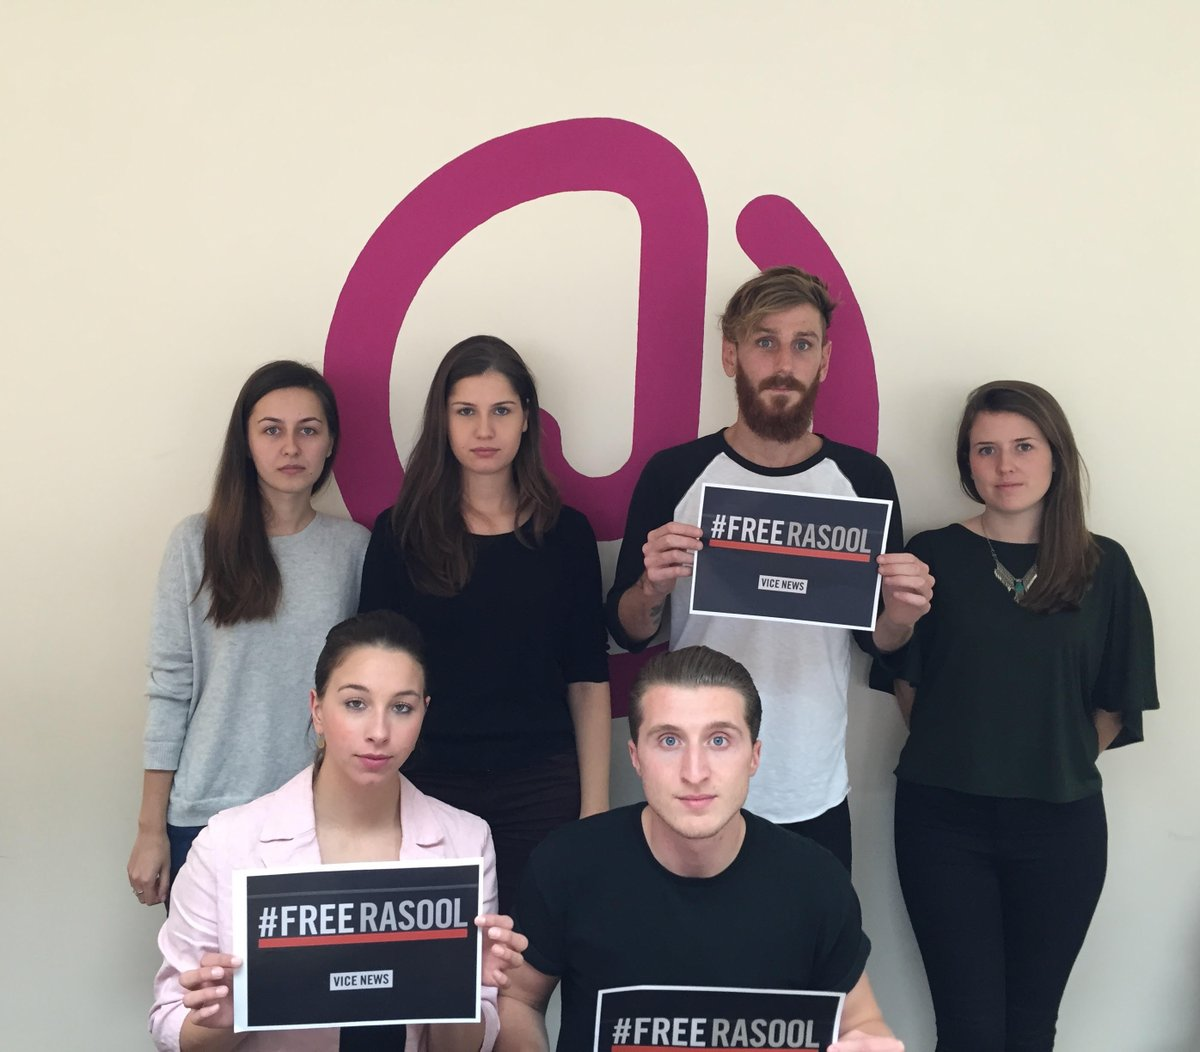 Journalism is not a crime. We've signed the petition to #FreeRasool  https://t.co/m2dSViQIbo https://t.co/PcERF3gRI9